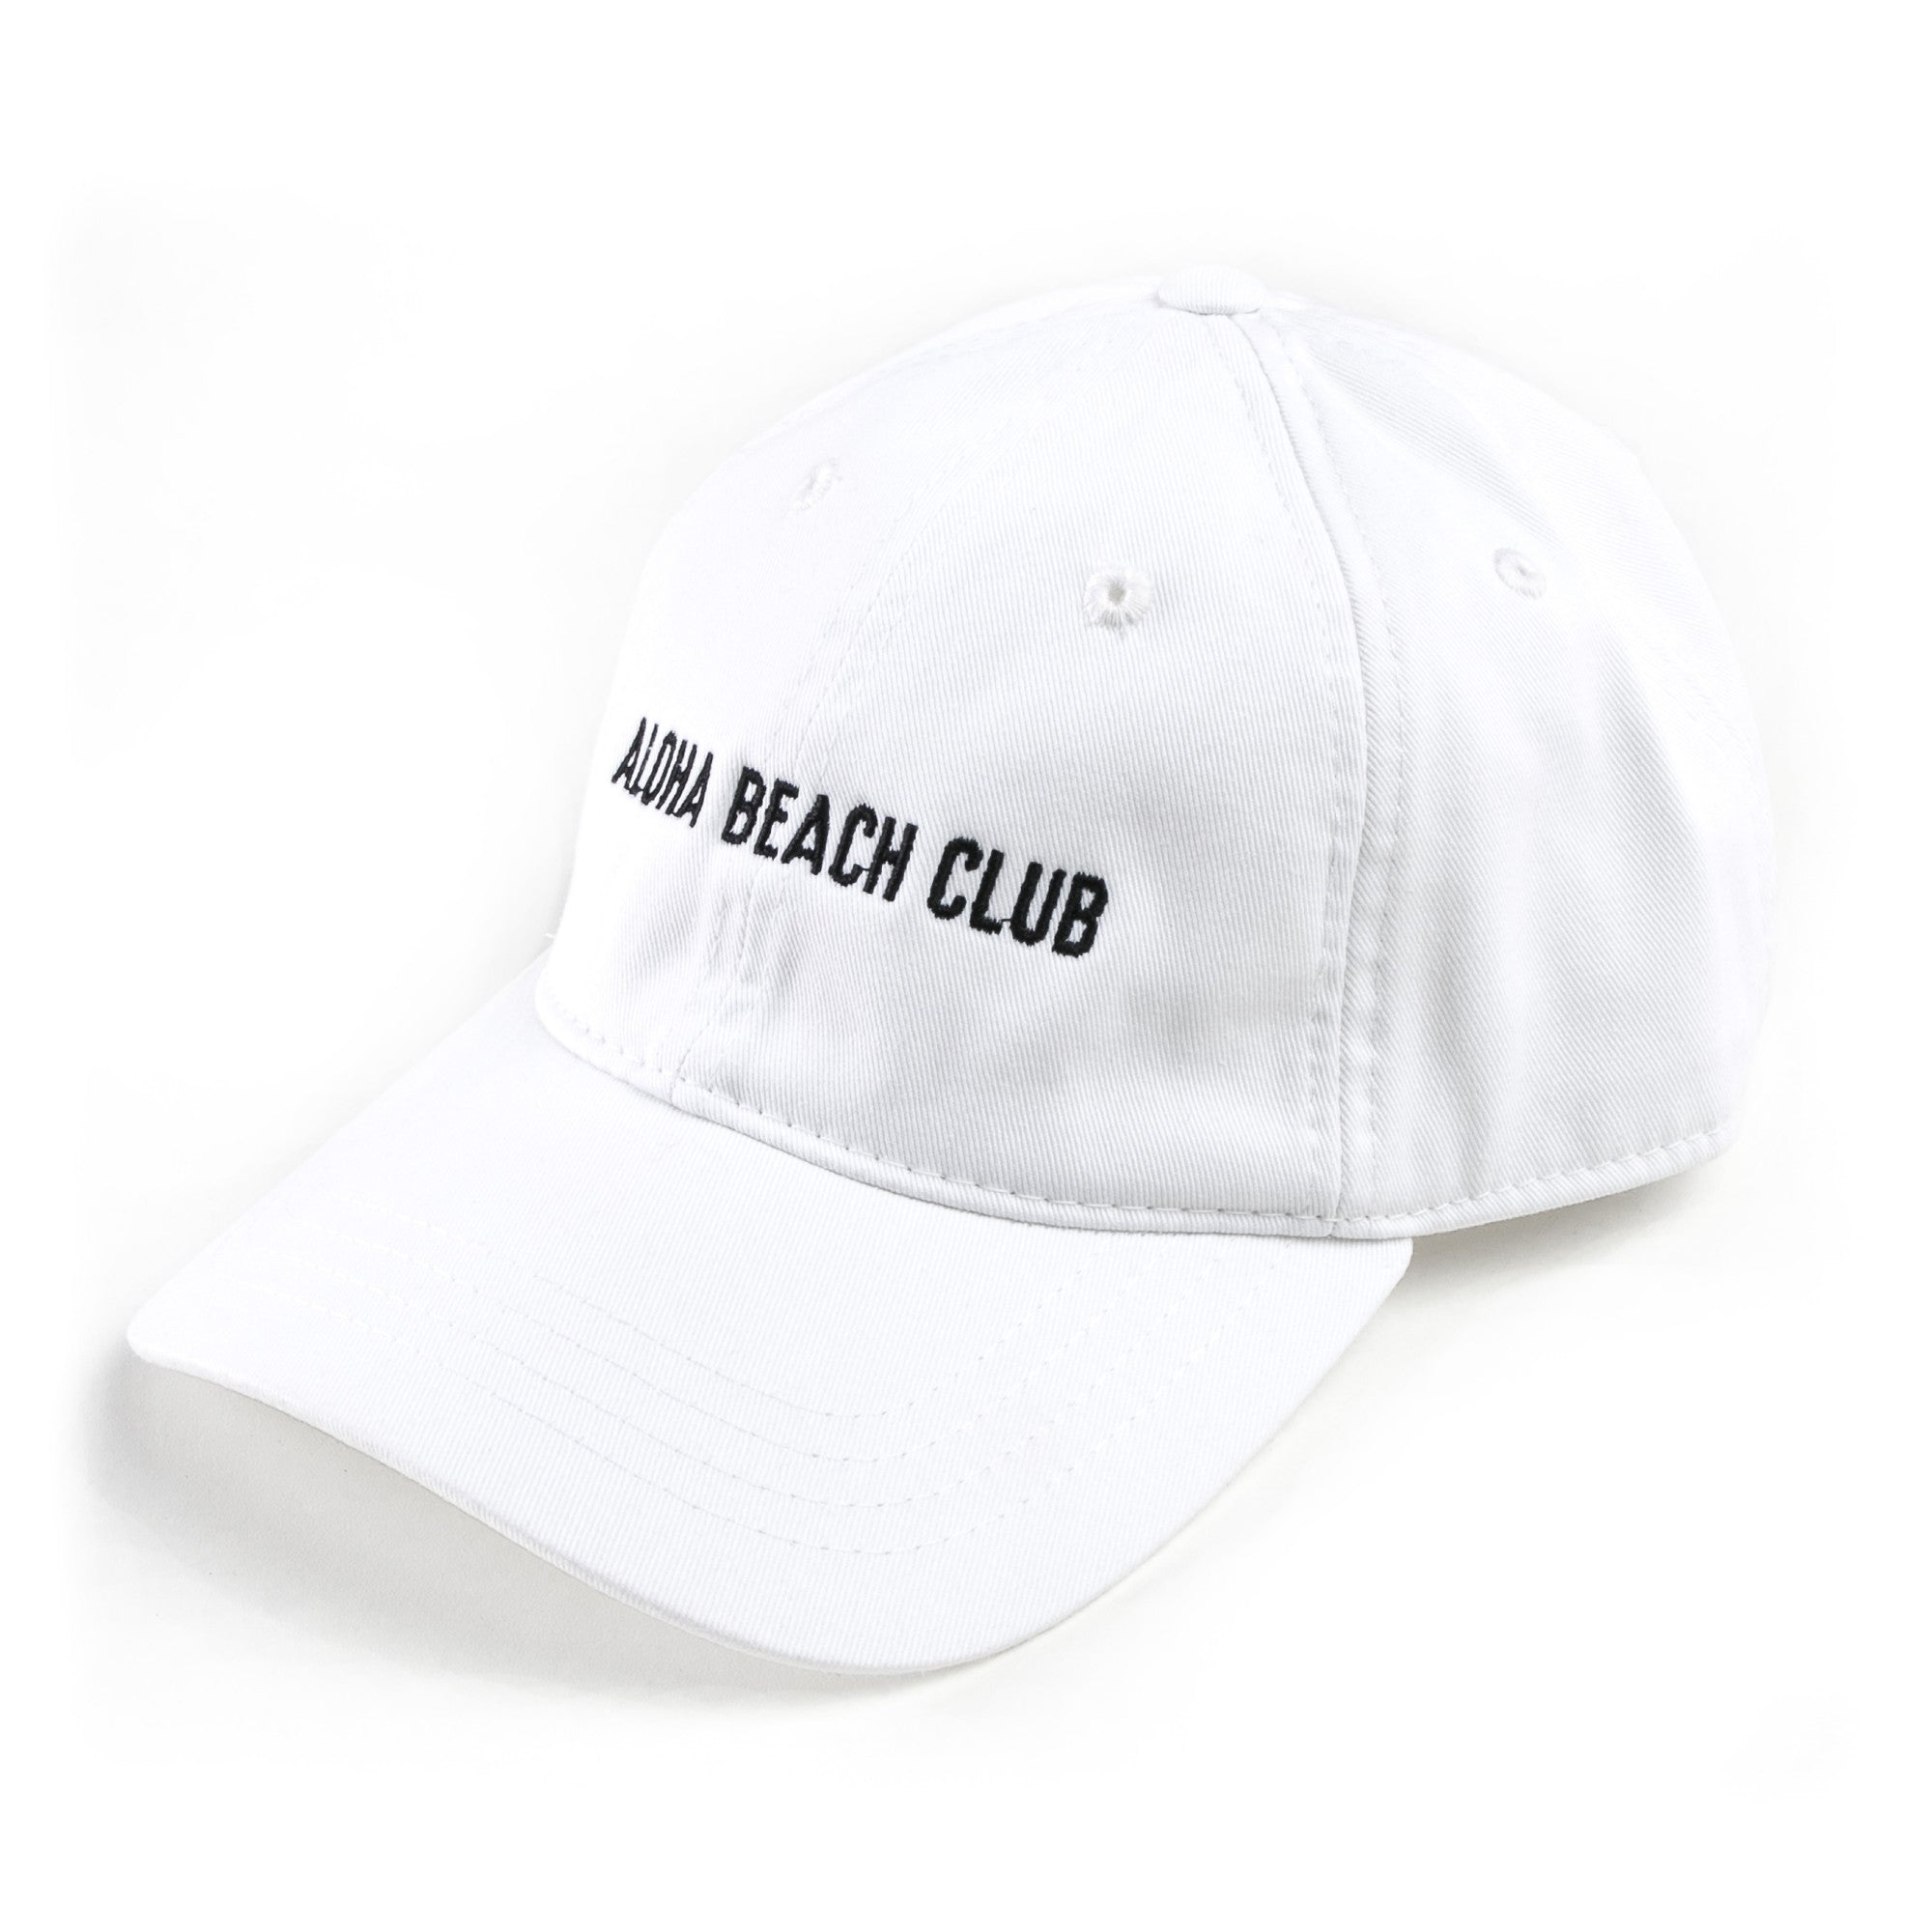 Aloha Beach Club - ABC Polo Cap White - Aloha Beach Club 4361f3146a1f